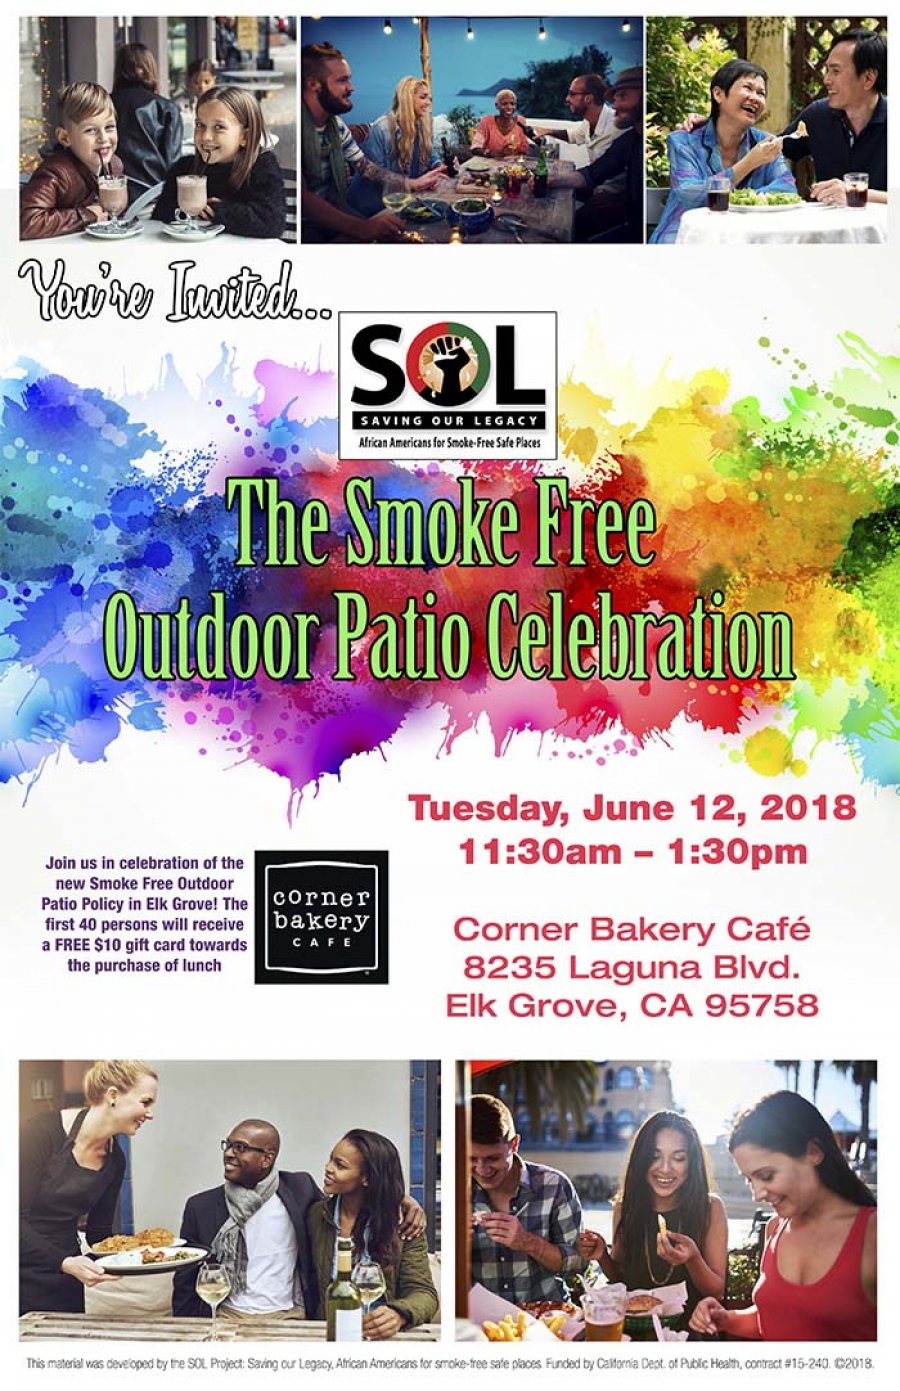 Smoke Free Outdoor Celebration at Corner Bakery Cafe in Elk Grove